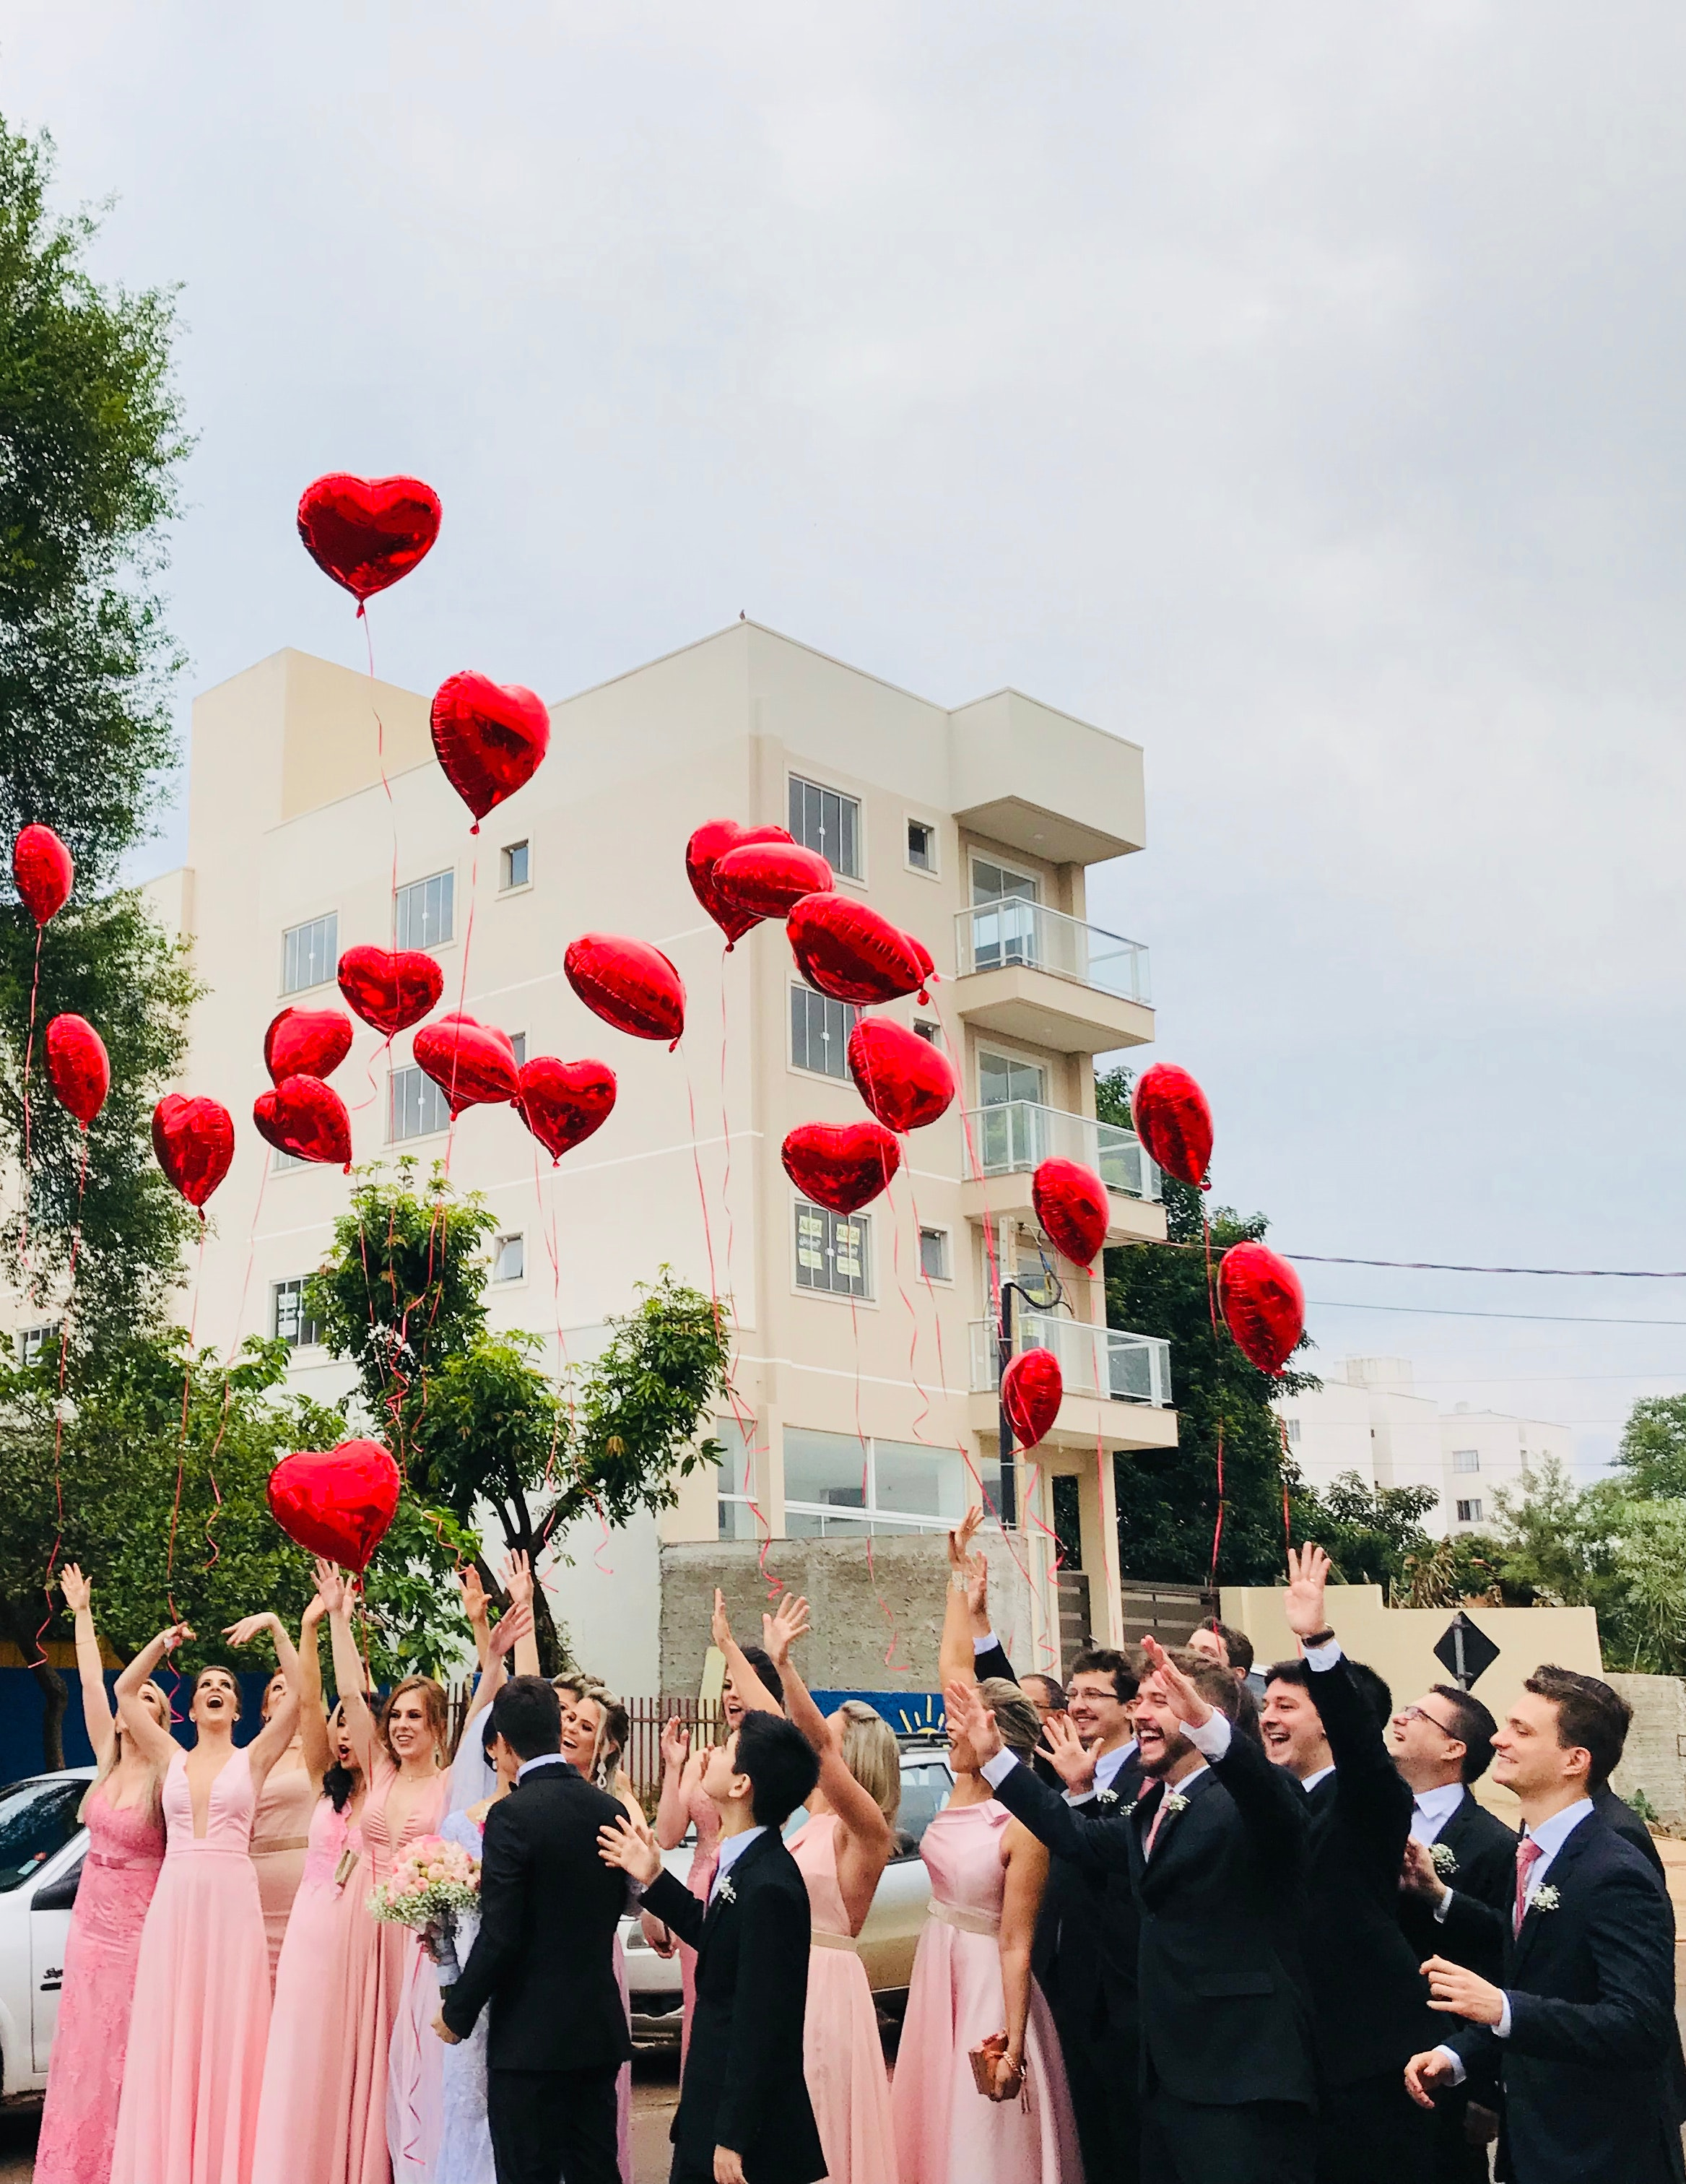 Women Wearing Pink Dresses and Men Wearing Black Suit Jacket and Pants Raising Hands With Red Heart Balloons, Adult, Happy, Wedding, Wear, HQ Photo